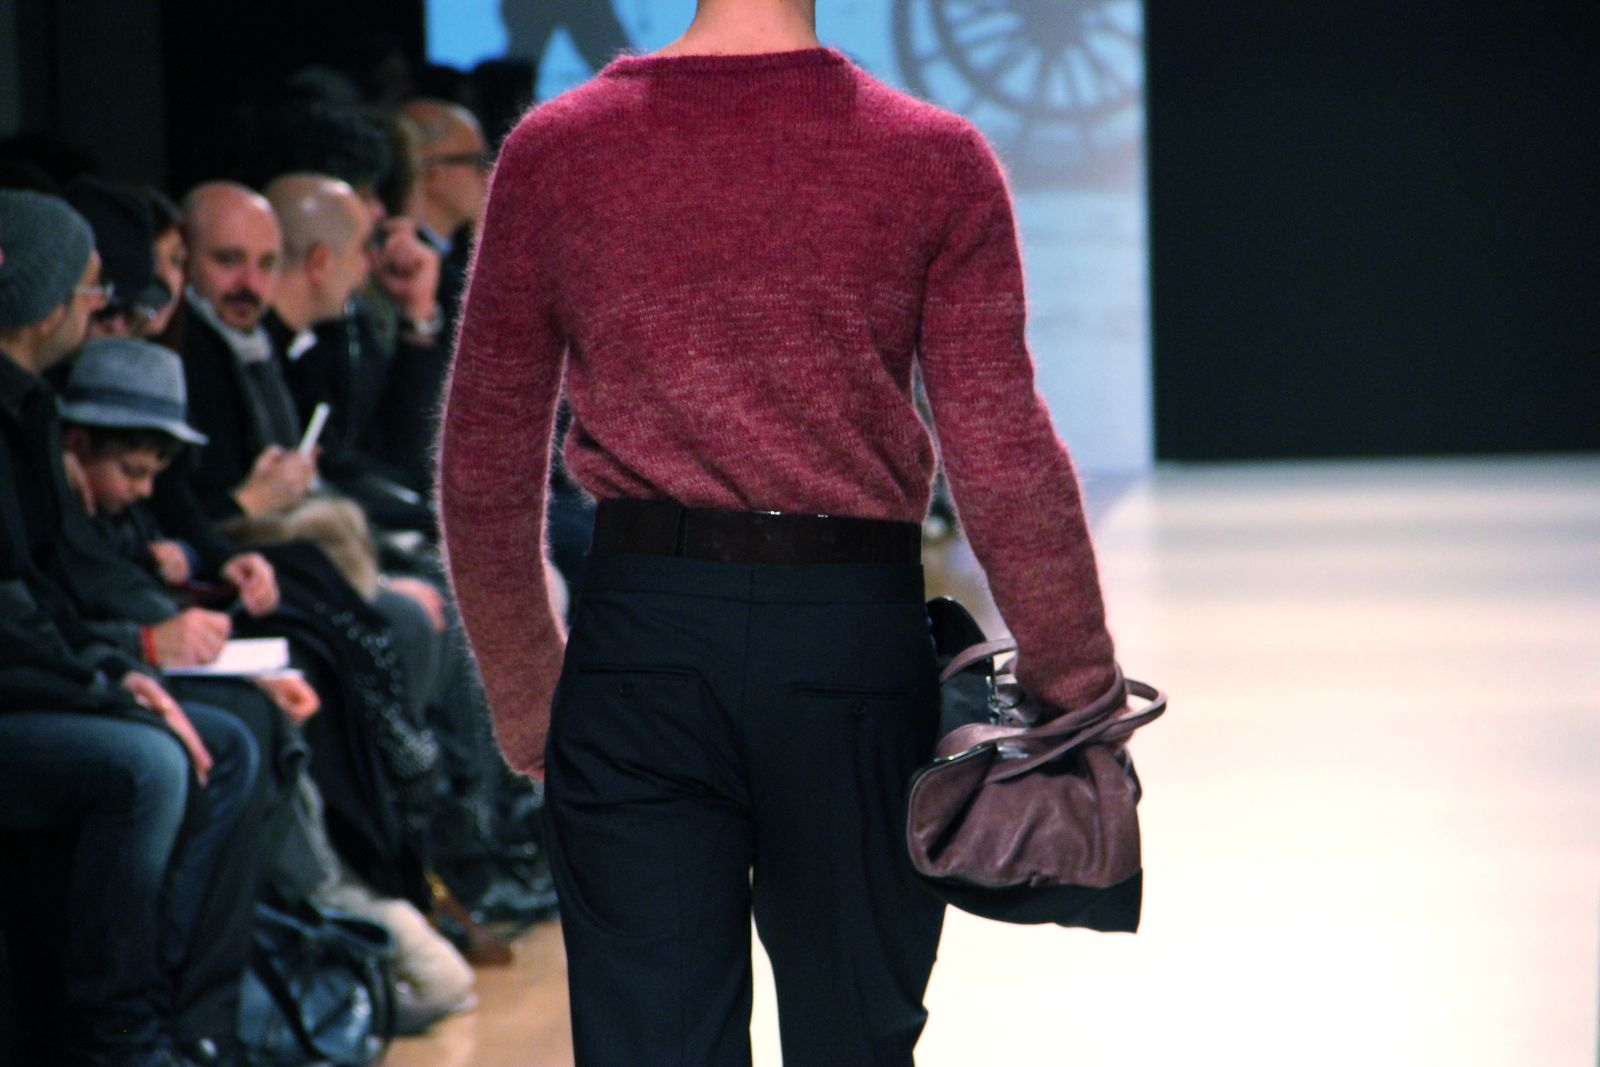 Catwalk Gazzarrini Fall Winter 2012-13 Men Fashion Show